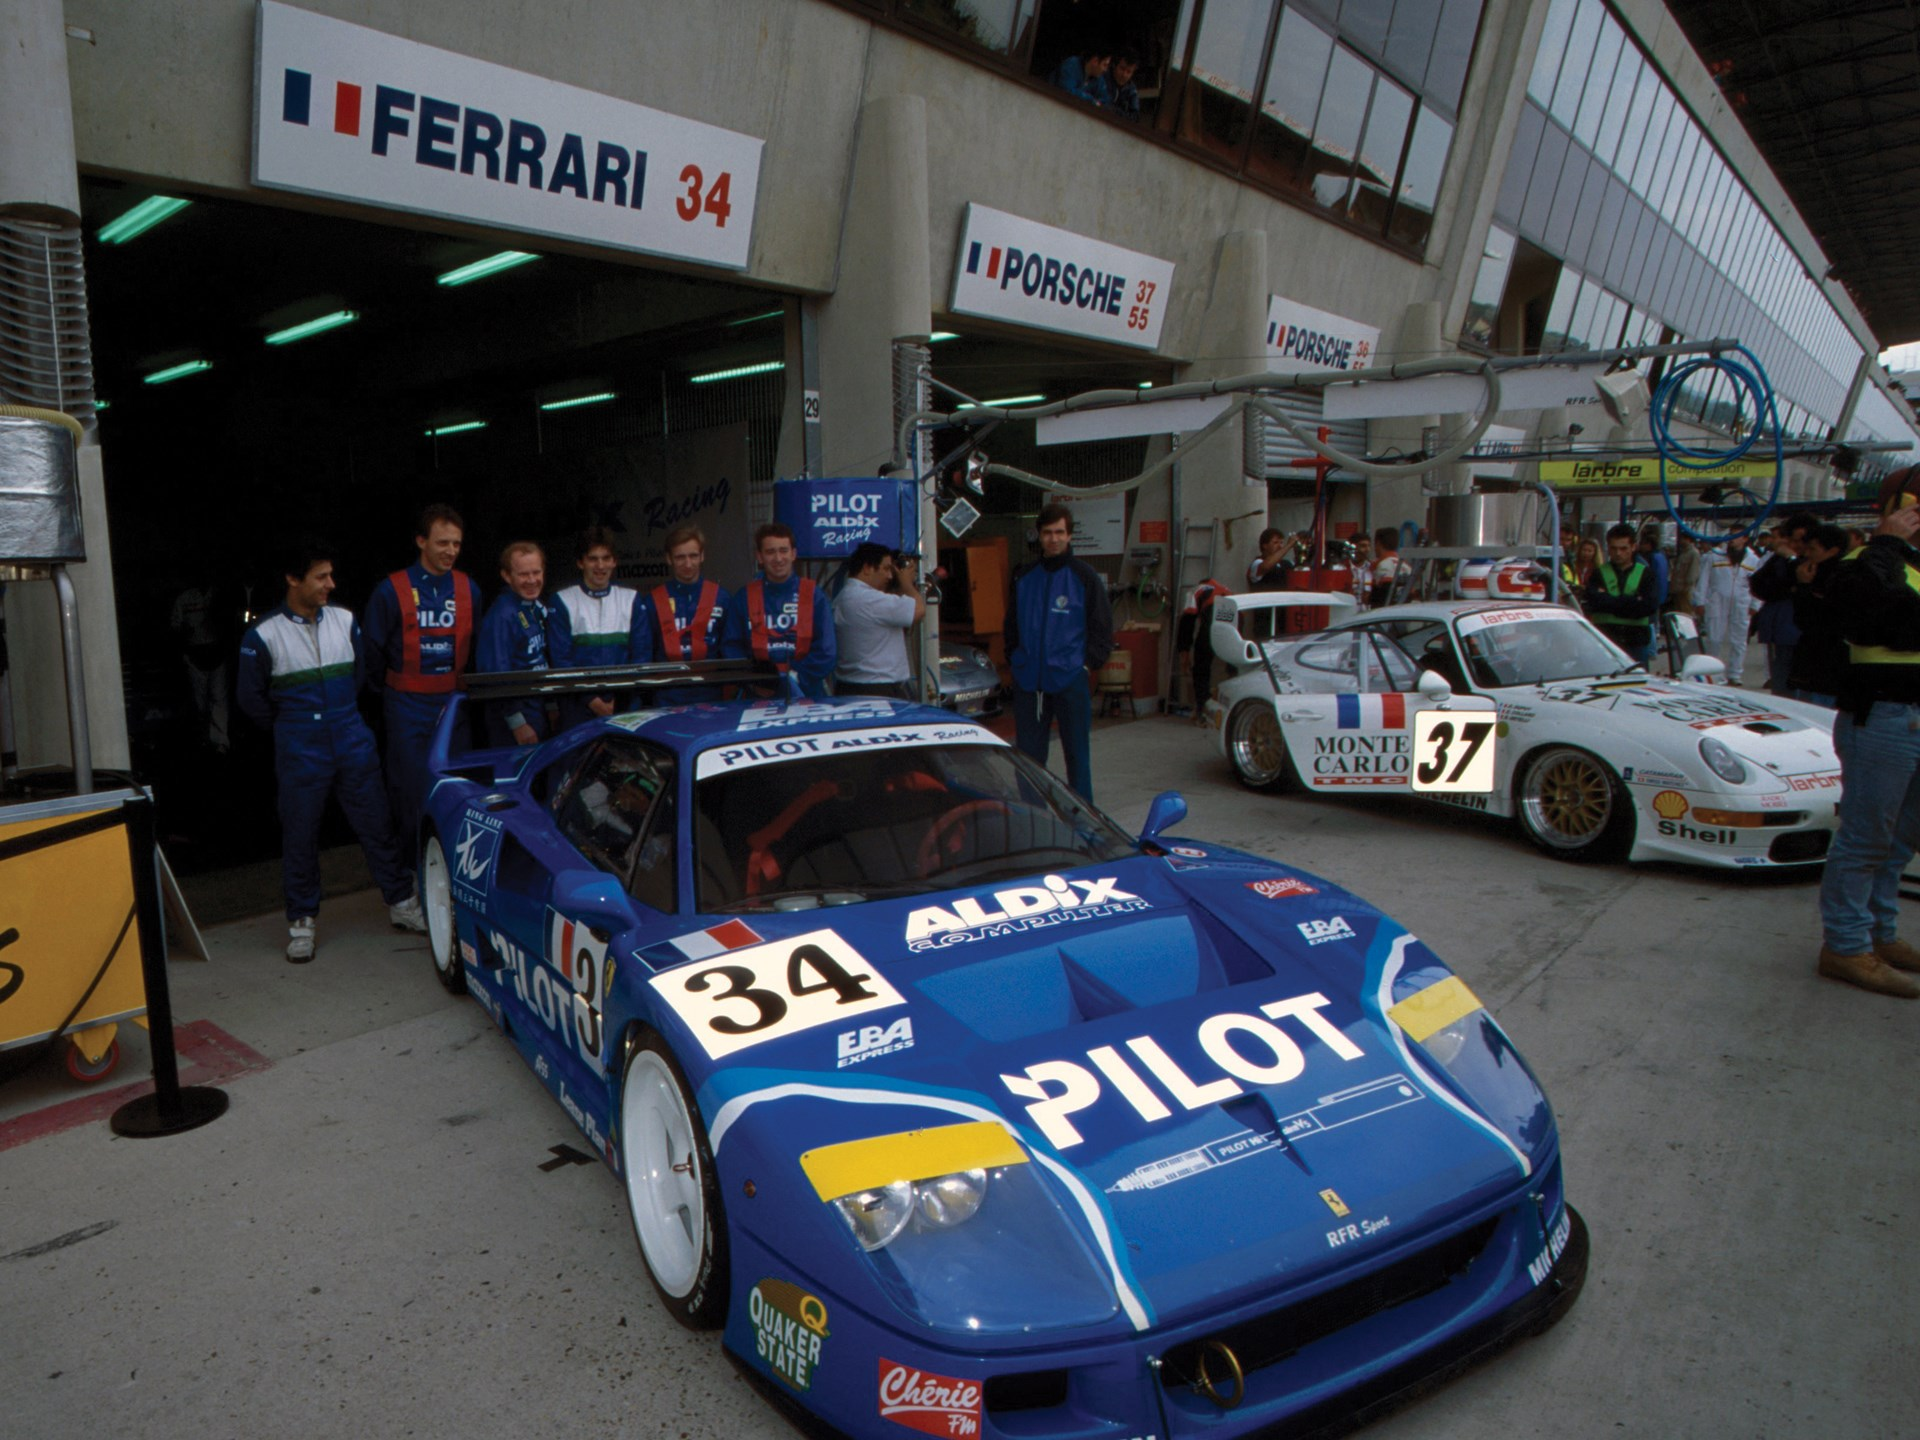 In the pits at the 1995 24 Hours of Le Mans.